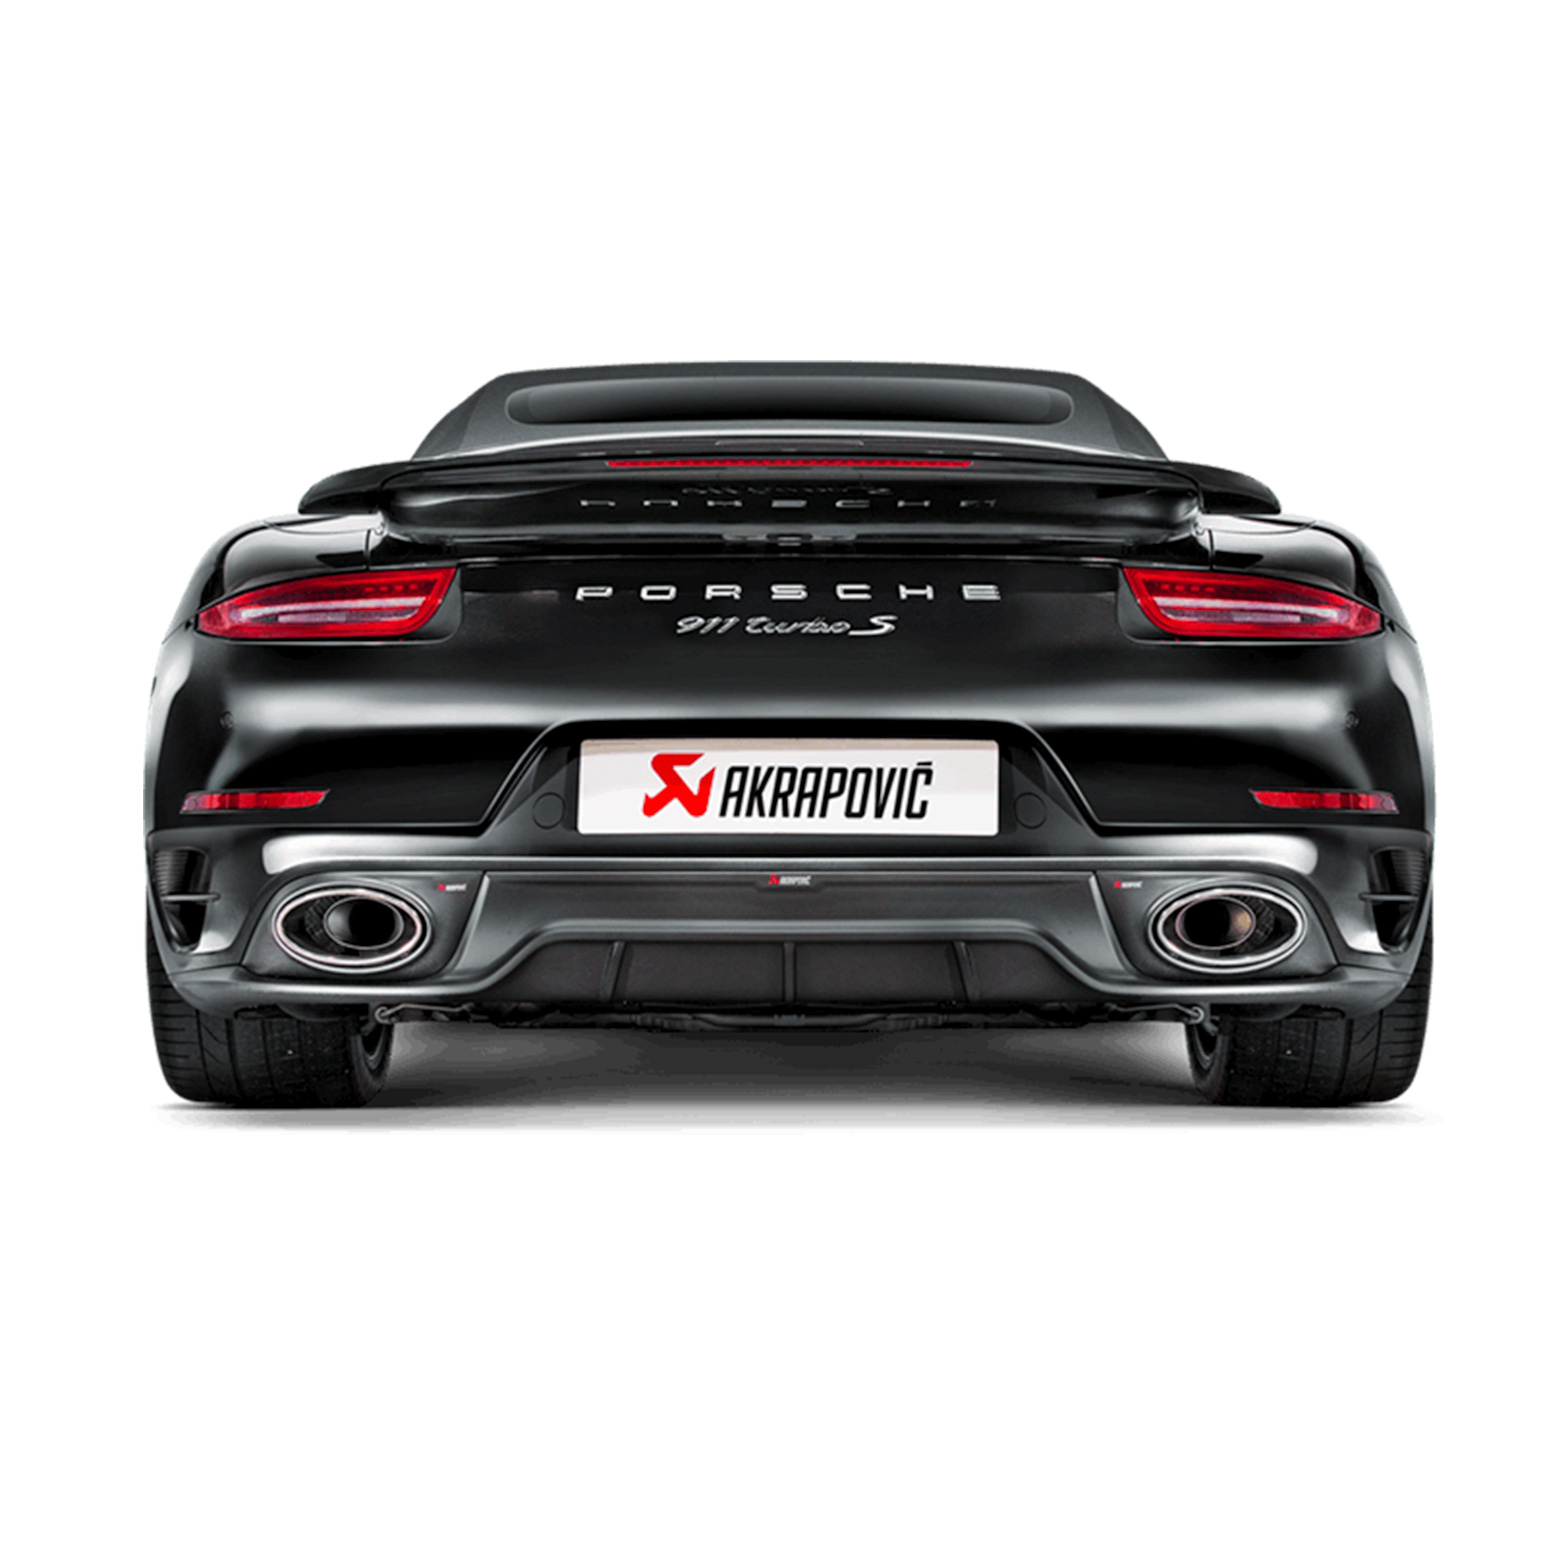 Porsche Akrapovic Slip-On Line (Titanium) Exhaust with Carbon / Titanium Tips 911 (991.1) Turbo / Turbo S